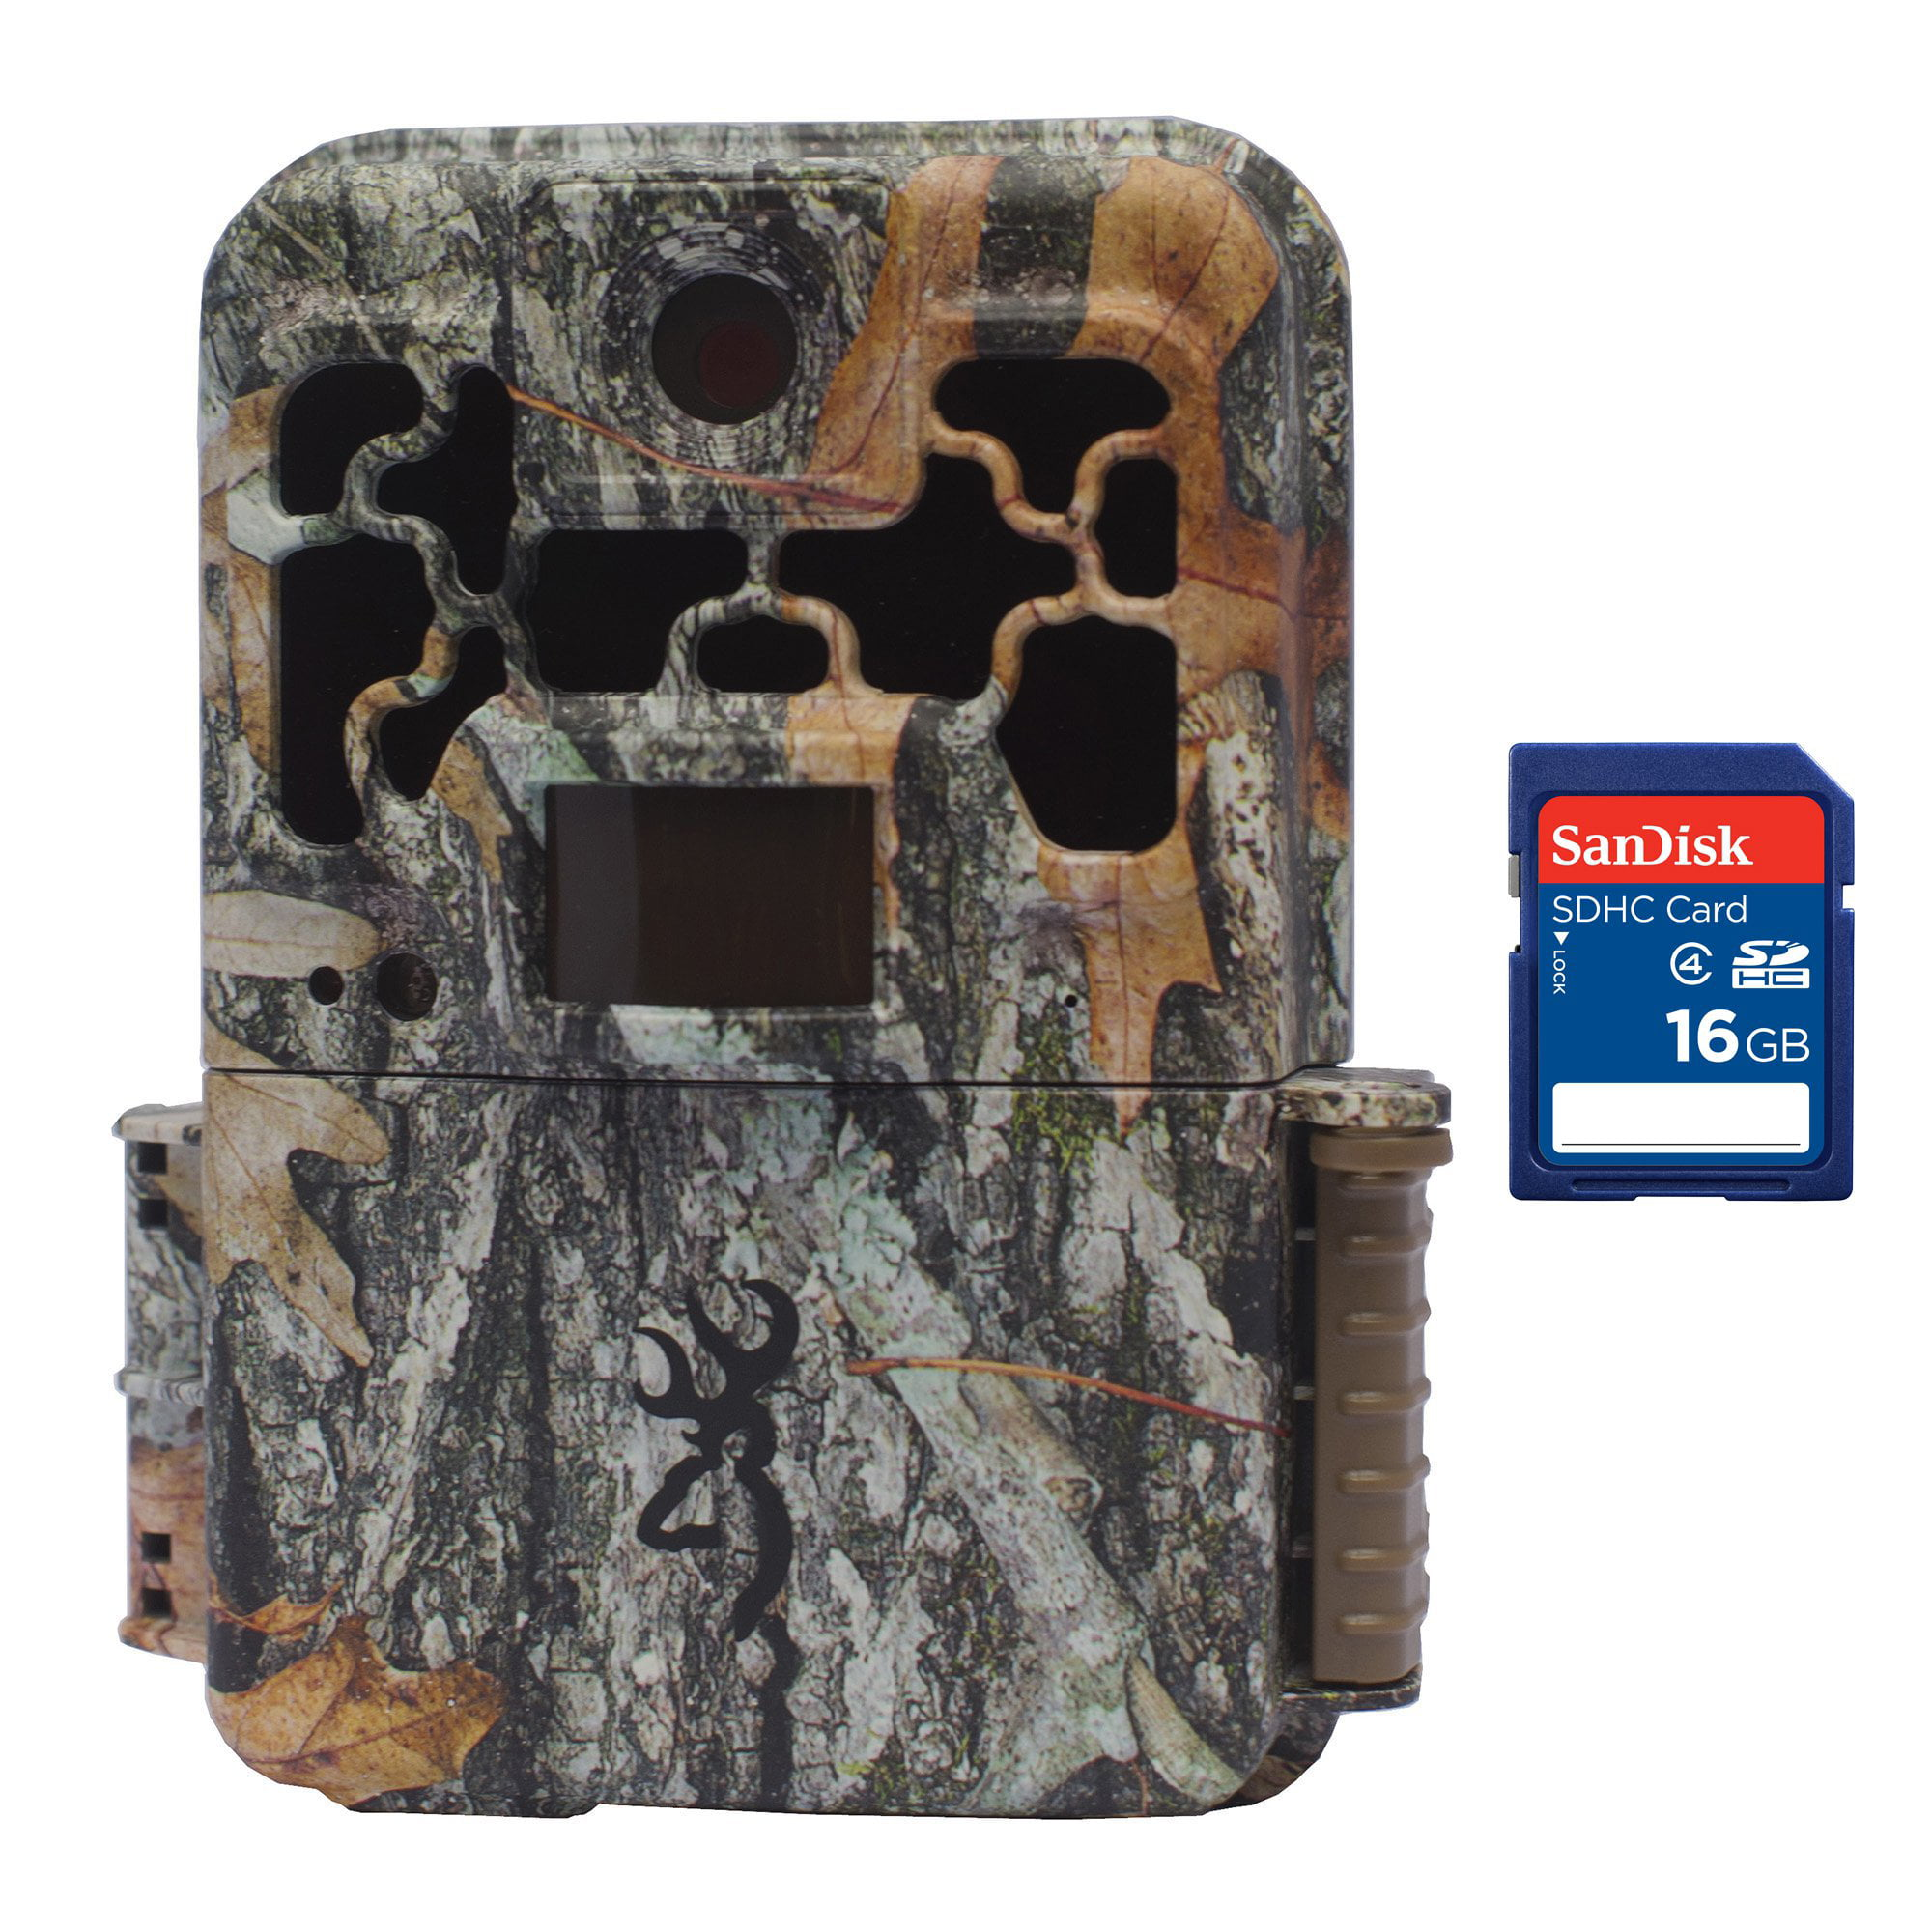 Browning Trail Cameras Spec Ops FHD Extreme 20MP IR Game Camera + 16GB SD Card by Browning Trail Cameras